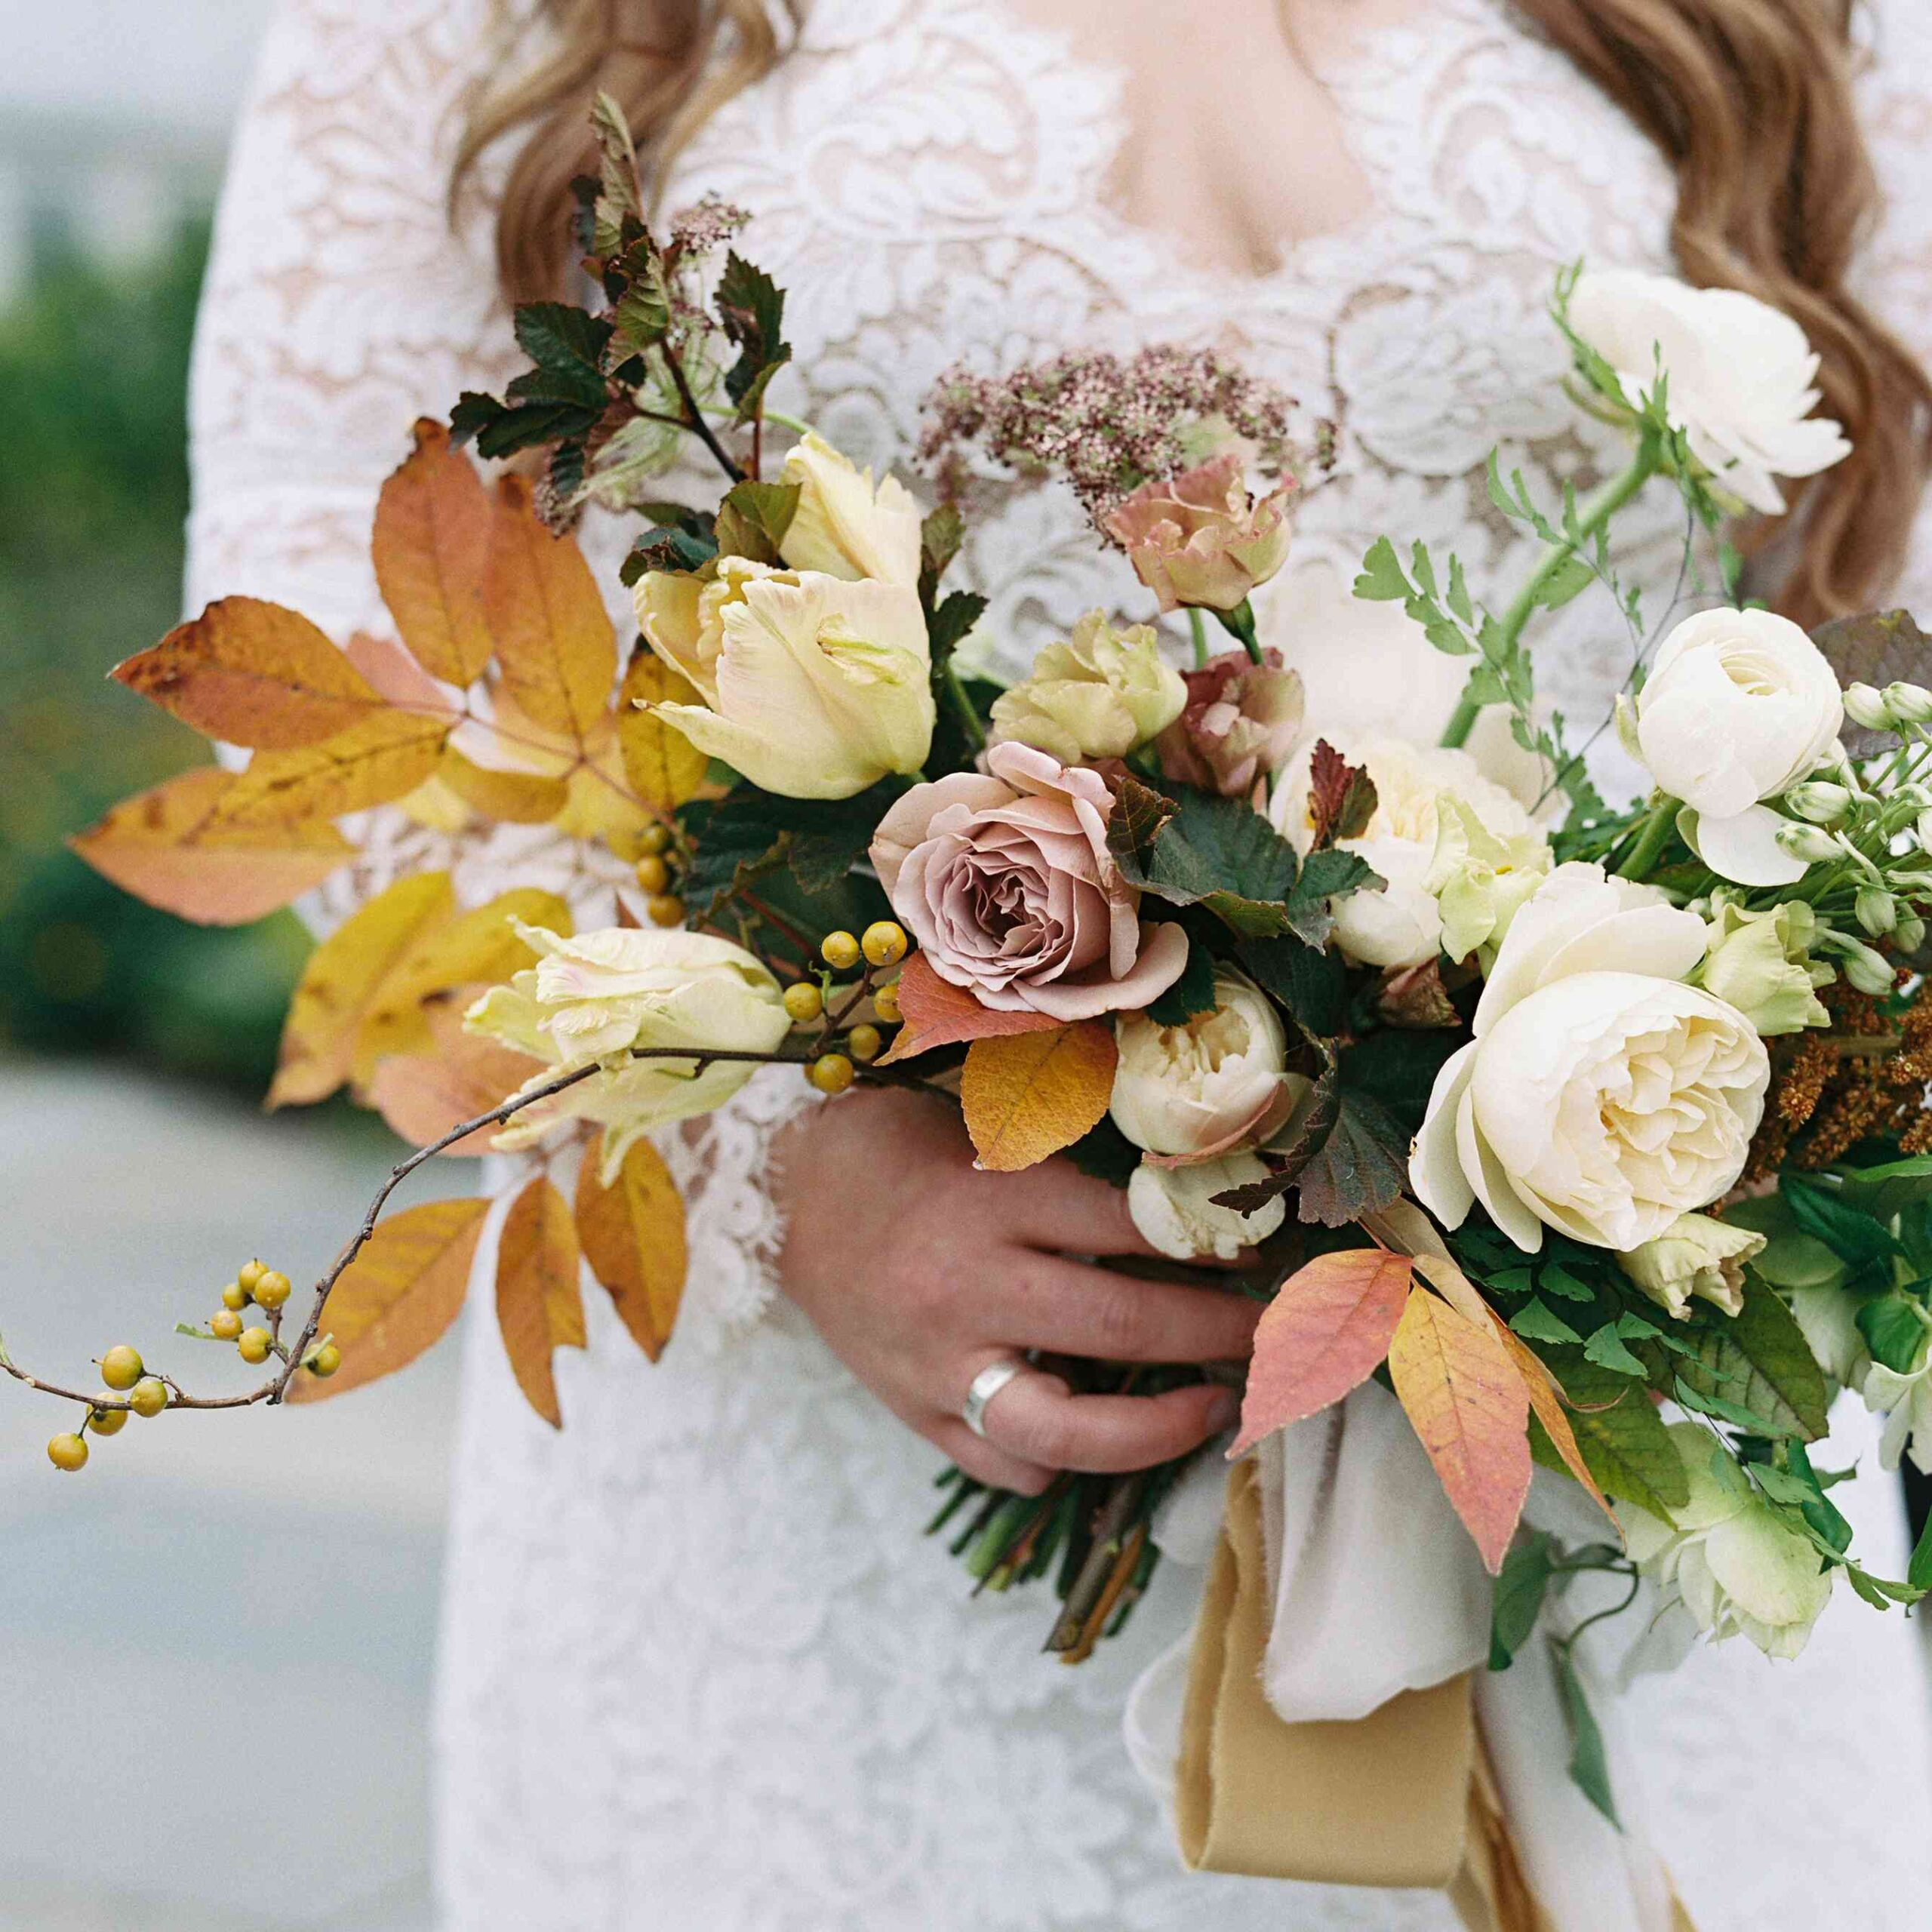 silk wedding bouquets to choose for the classy bridal 5 scaled - Silk Wedding Bouquets to Choose for The Classy Bridal